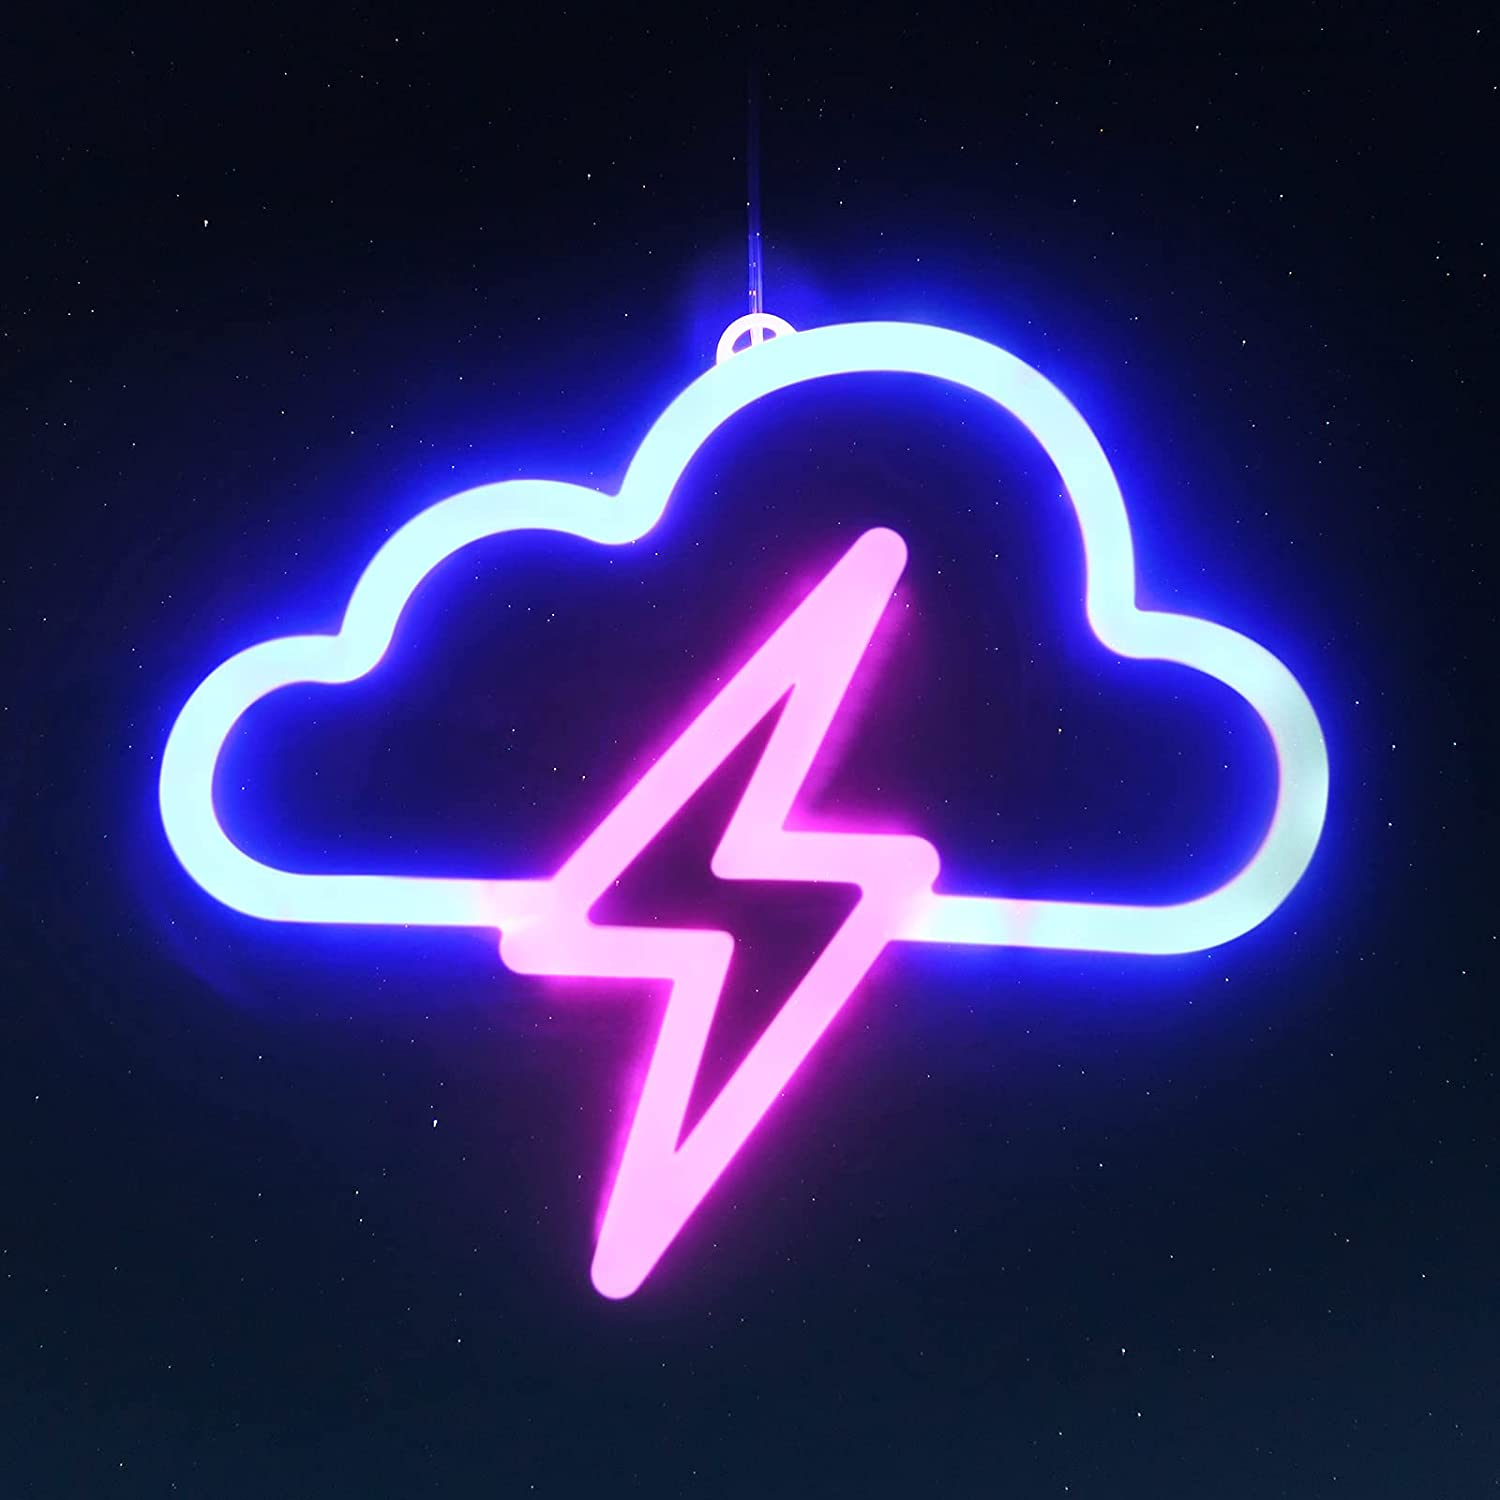 Hzran LED Cloud Lighting Neon Signs, Wall Neon Lights Decor with Hook, LED Neon Signs for Baby Room, Gaming Zone, Party, Warm and Soft Color Night Light for Kids, Teens, Girls, Boys.